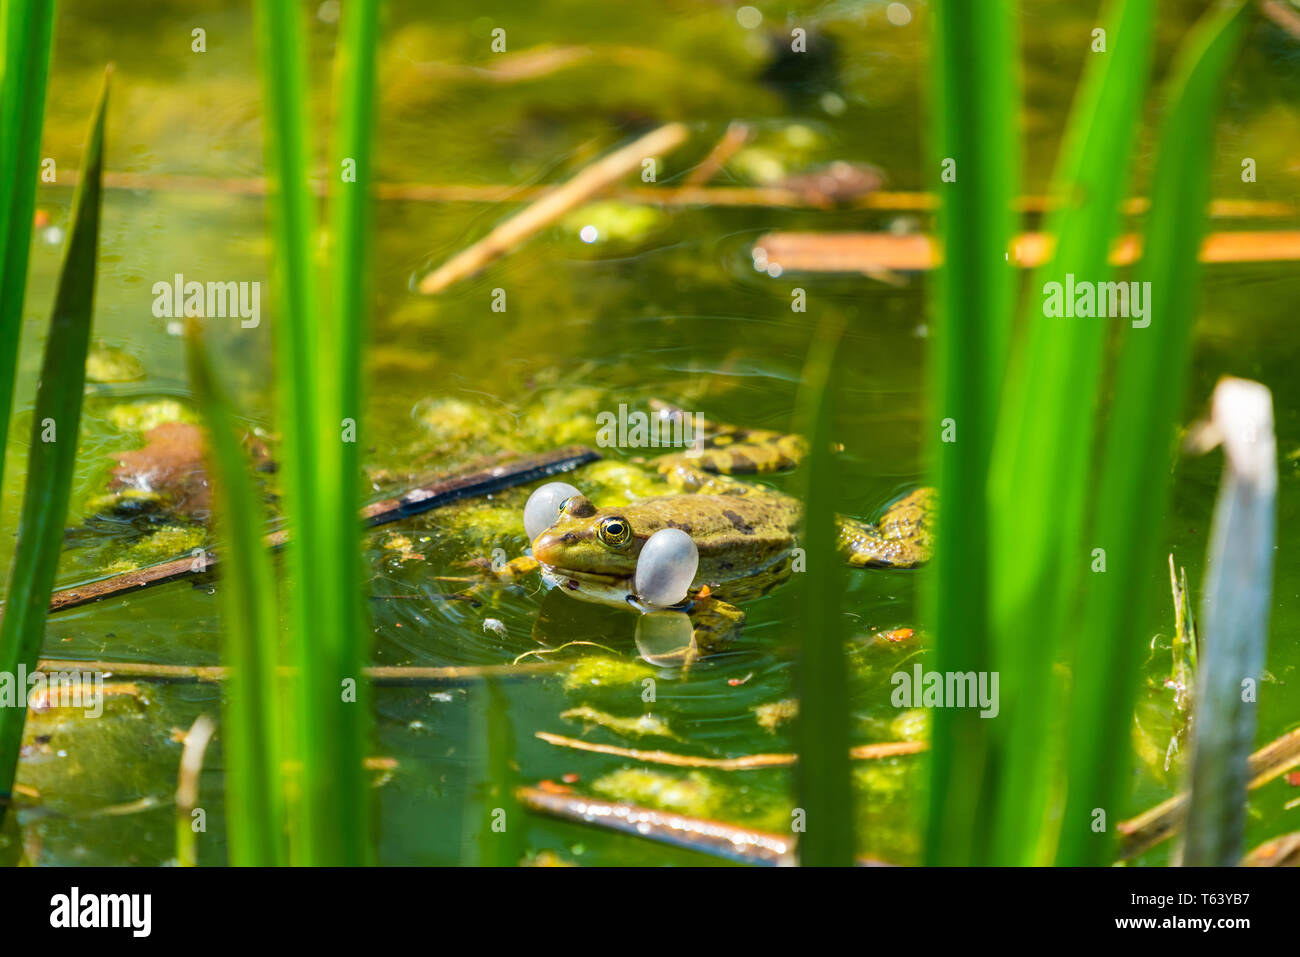 Marsh frog (Pelophylax ridibundus) sitting in a pond croaking with inflated vocal sacs - Stock Image